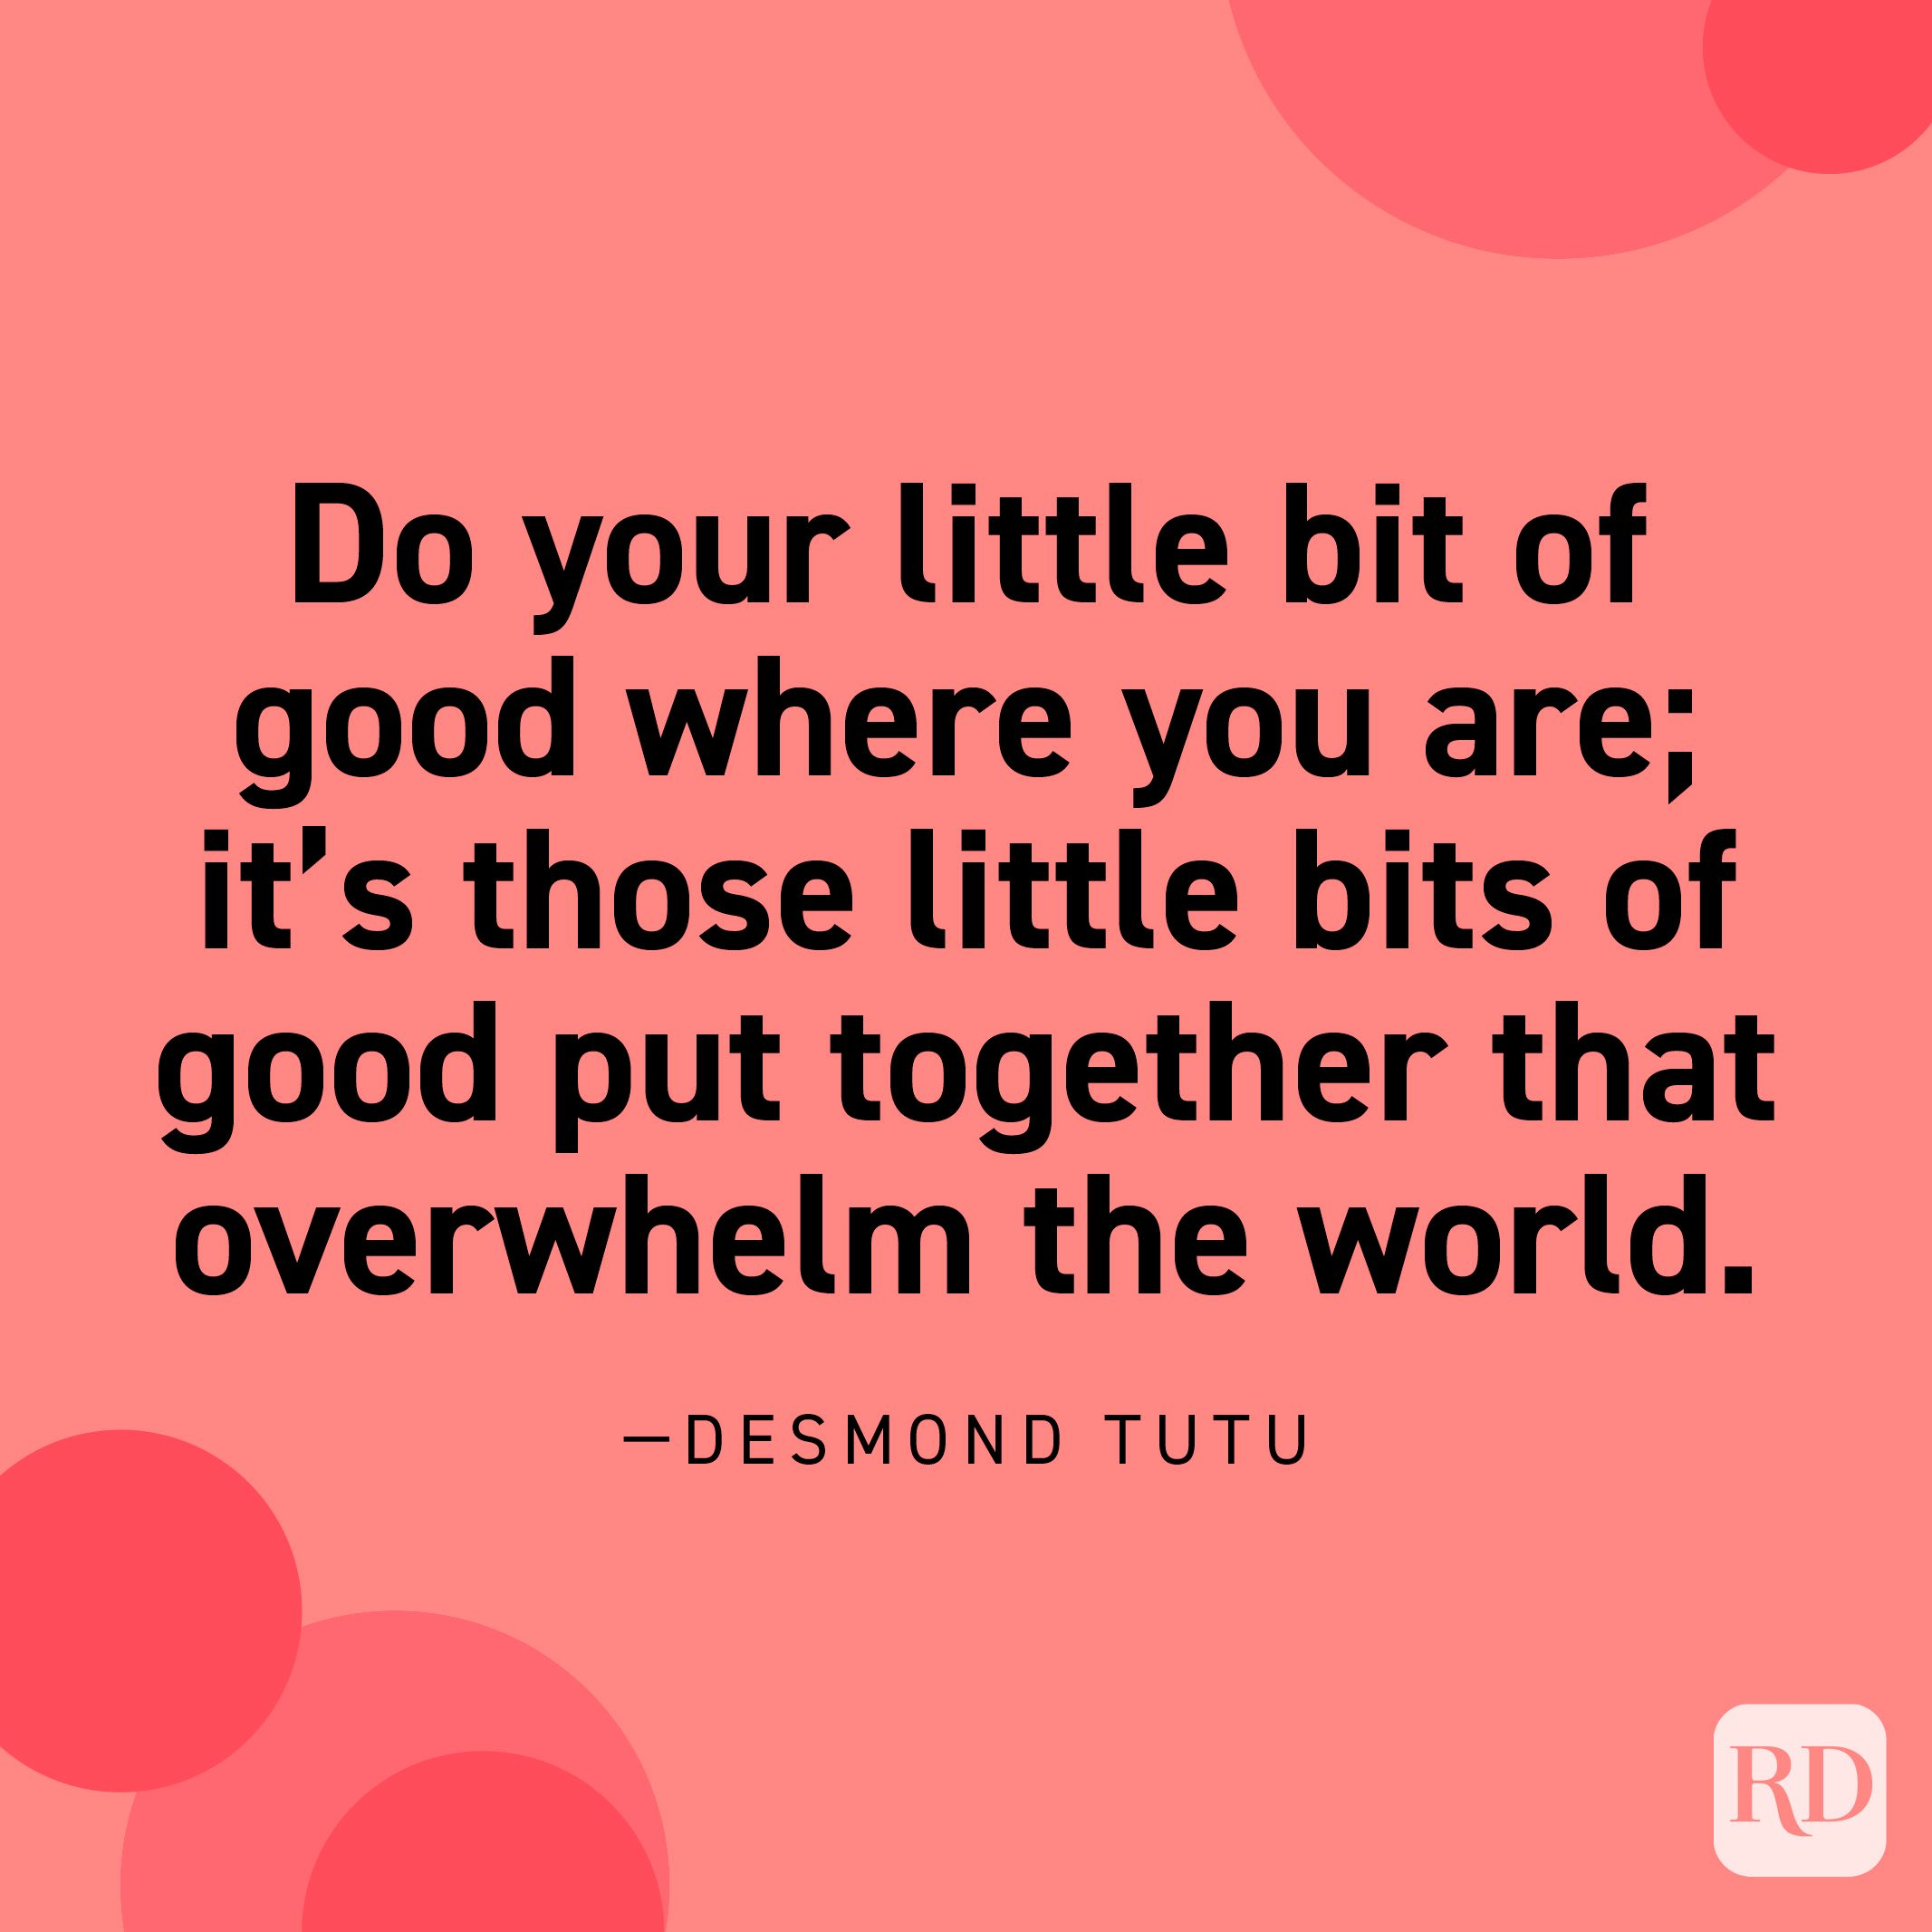 """""""Do your little bit of good where you are; it's those little bits of good put together that overwhelm the world."""" —Desmond Tutu."""